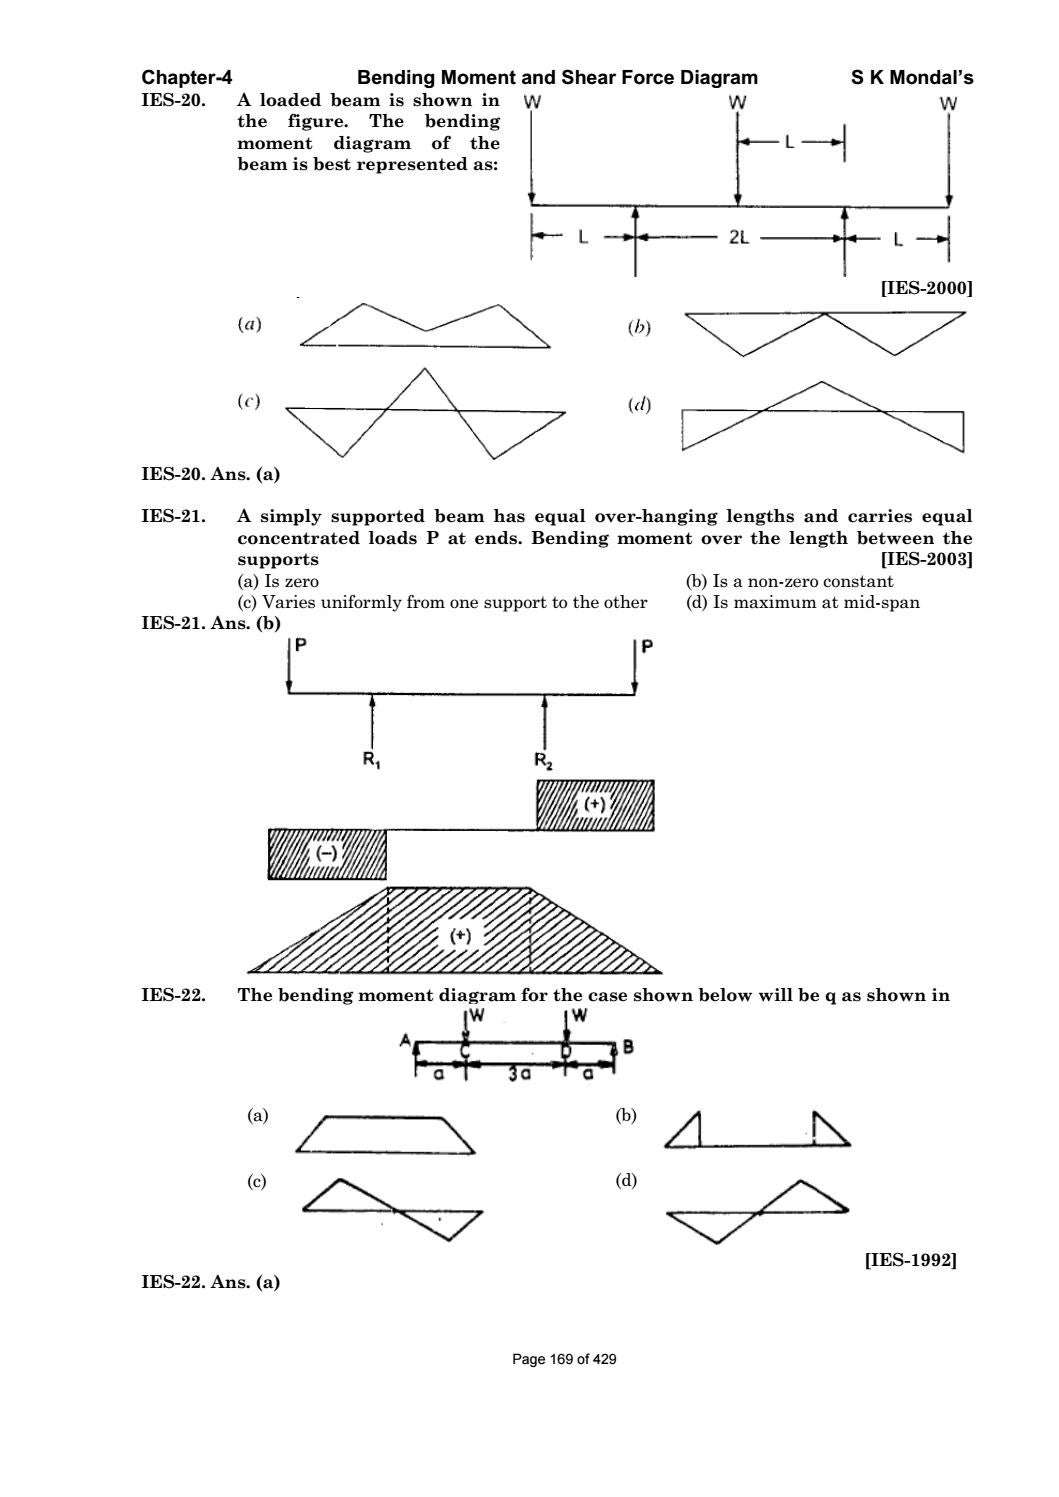 Strength Of Materials By S K Mondal Pdf Sdharmaraj Issuu Two Concentrated Loads Draw The Shear And Bending Moment Diagrams